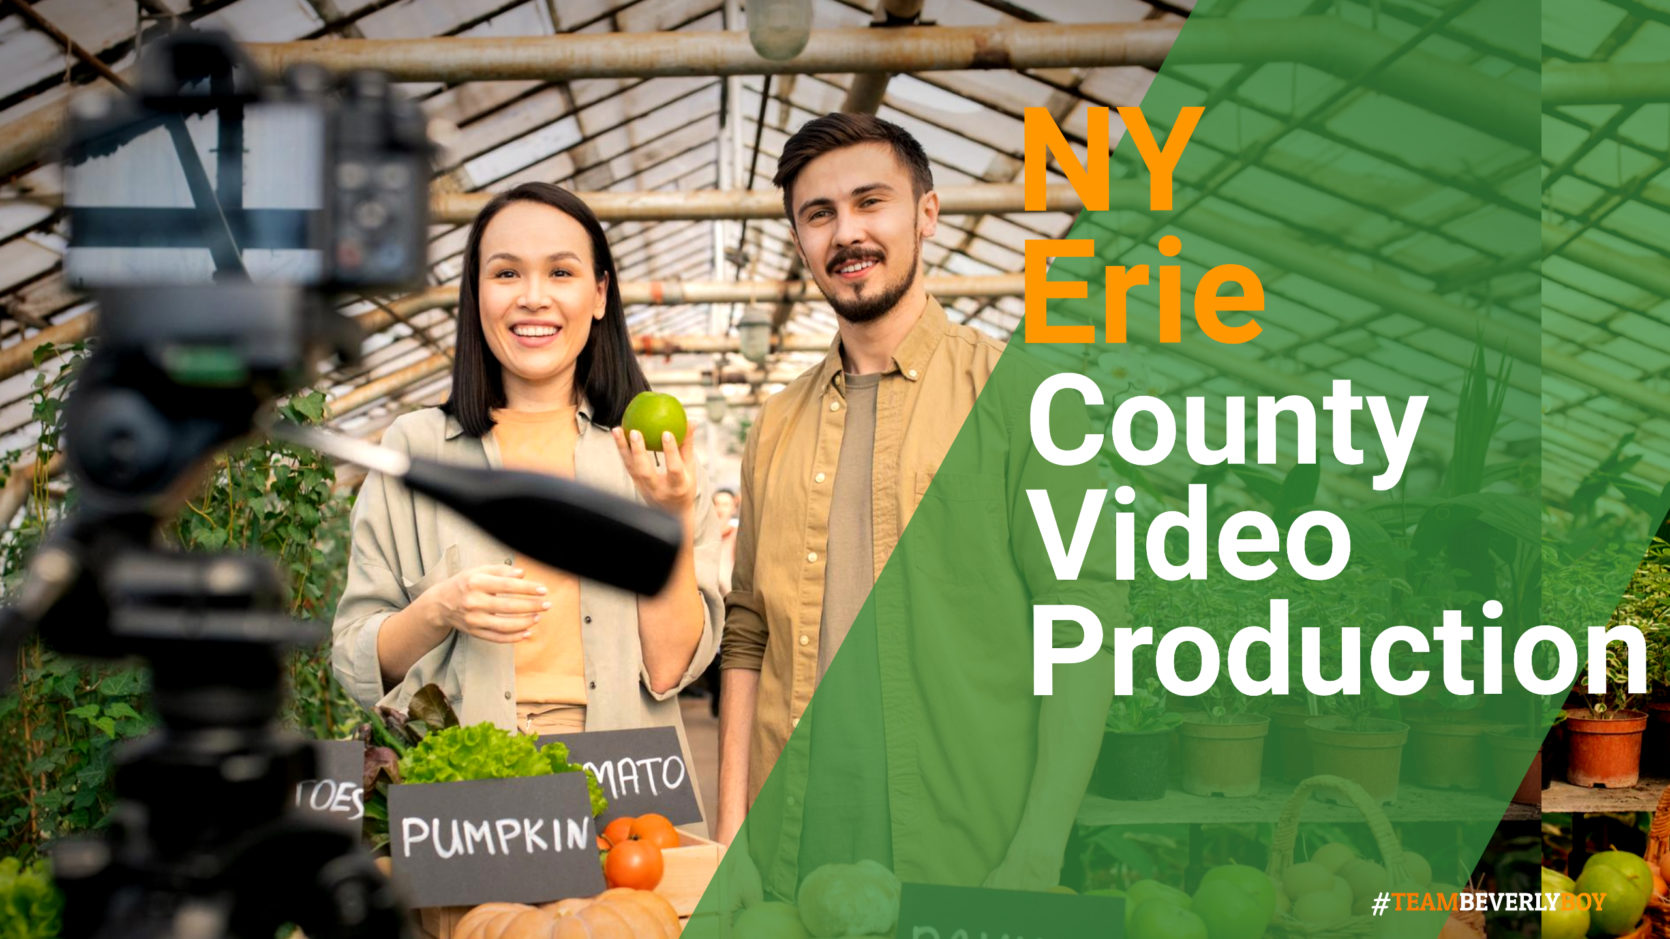 Erie County NY video production